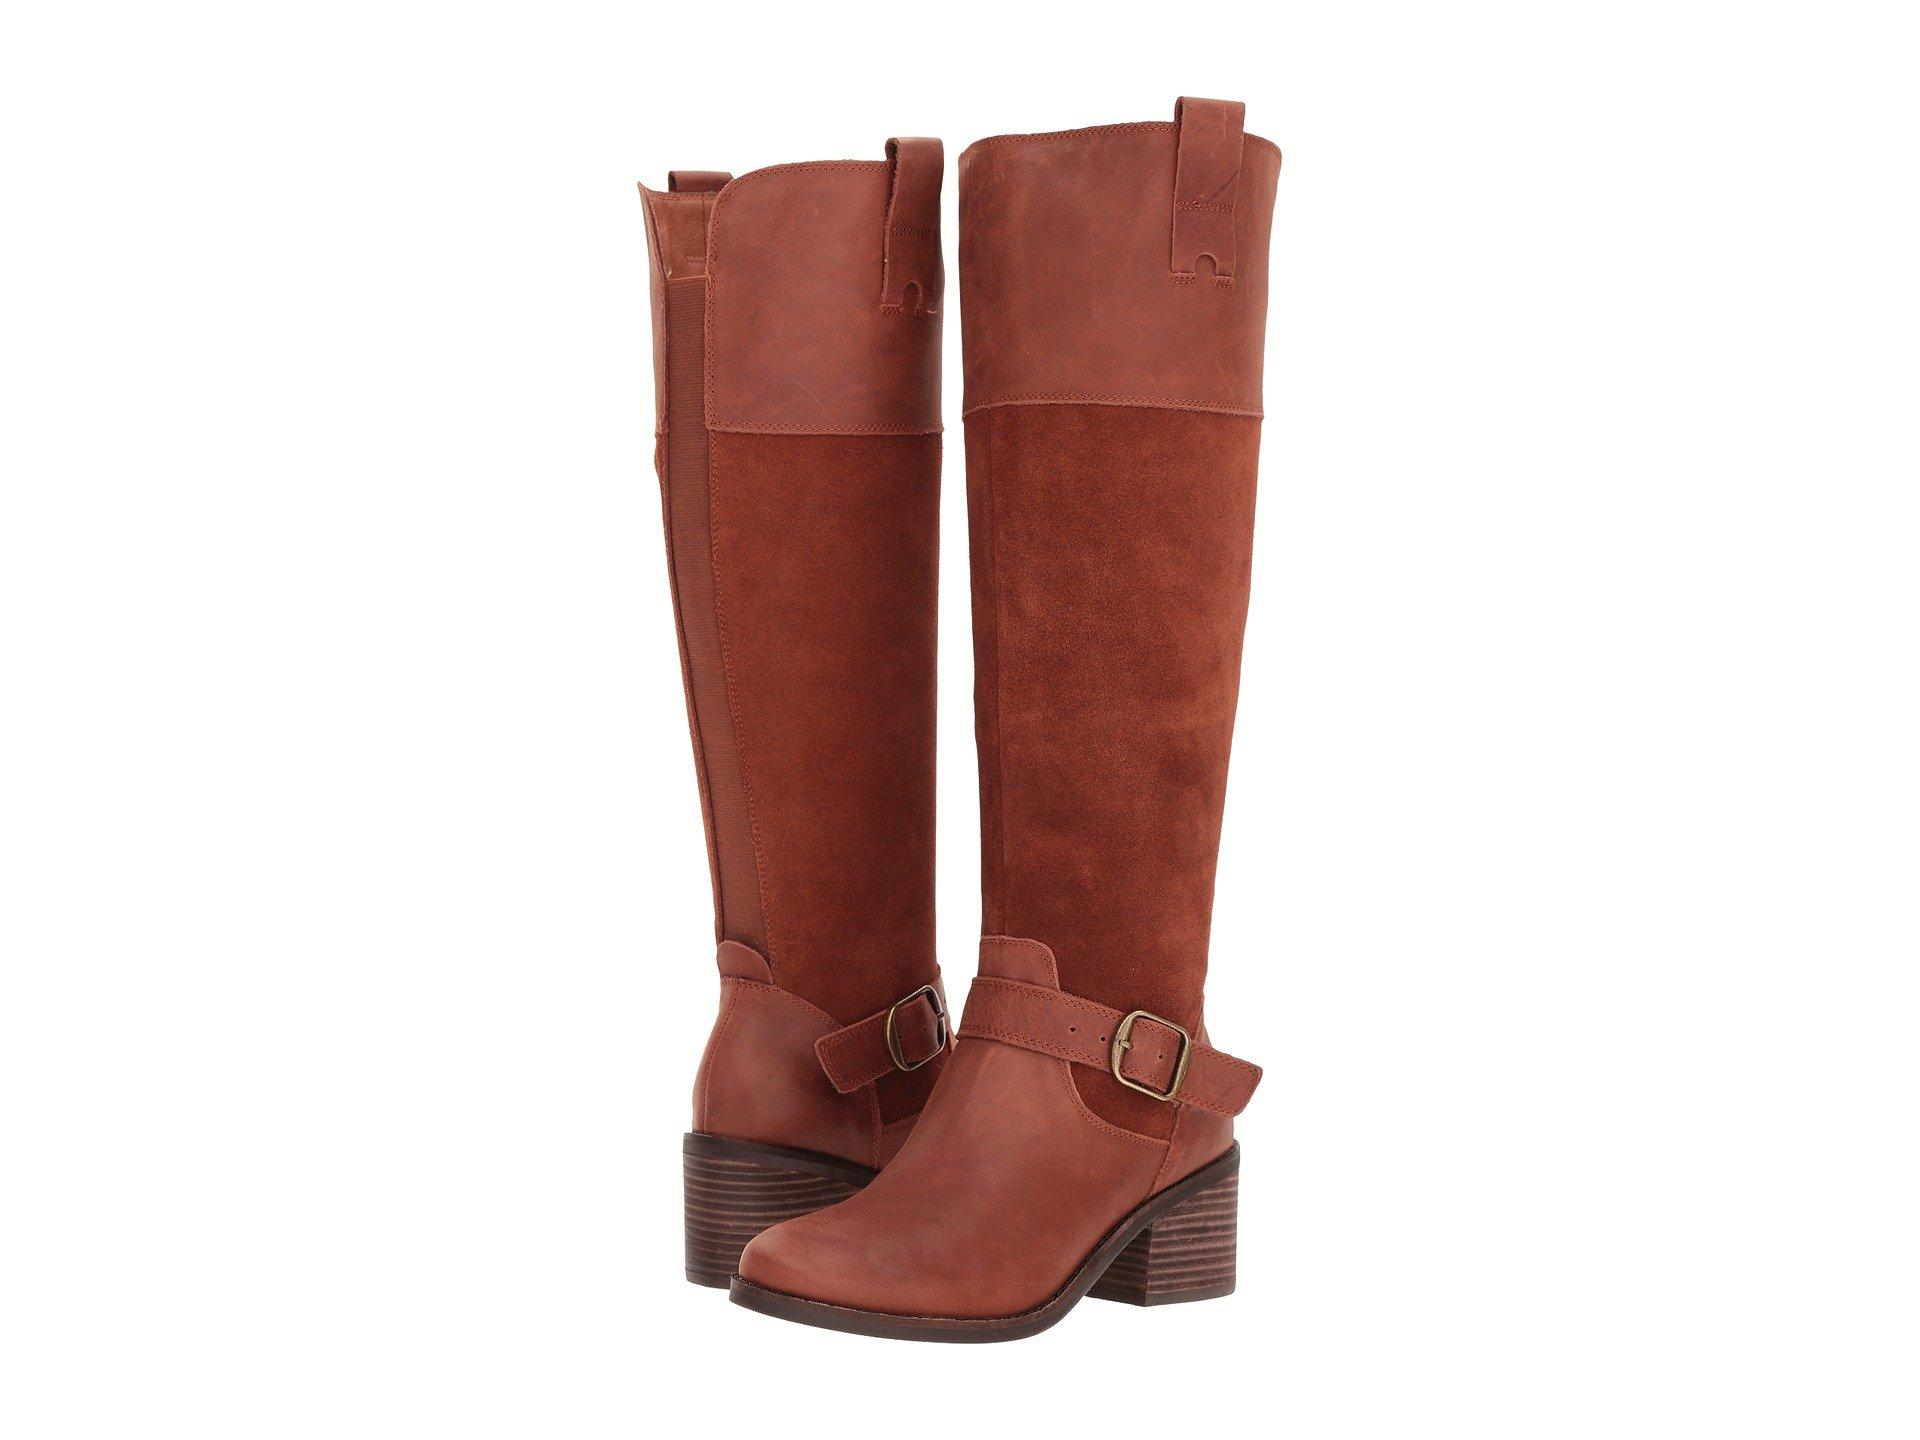 8a52d5fe7da Women'S Kailan Wide-Calf Riding Boots Women'S Shoes in Rye Wide